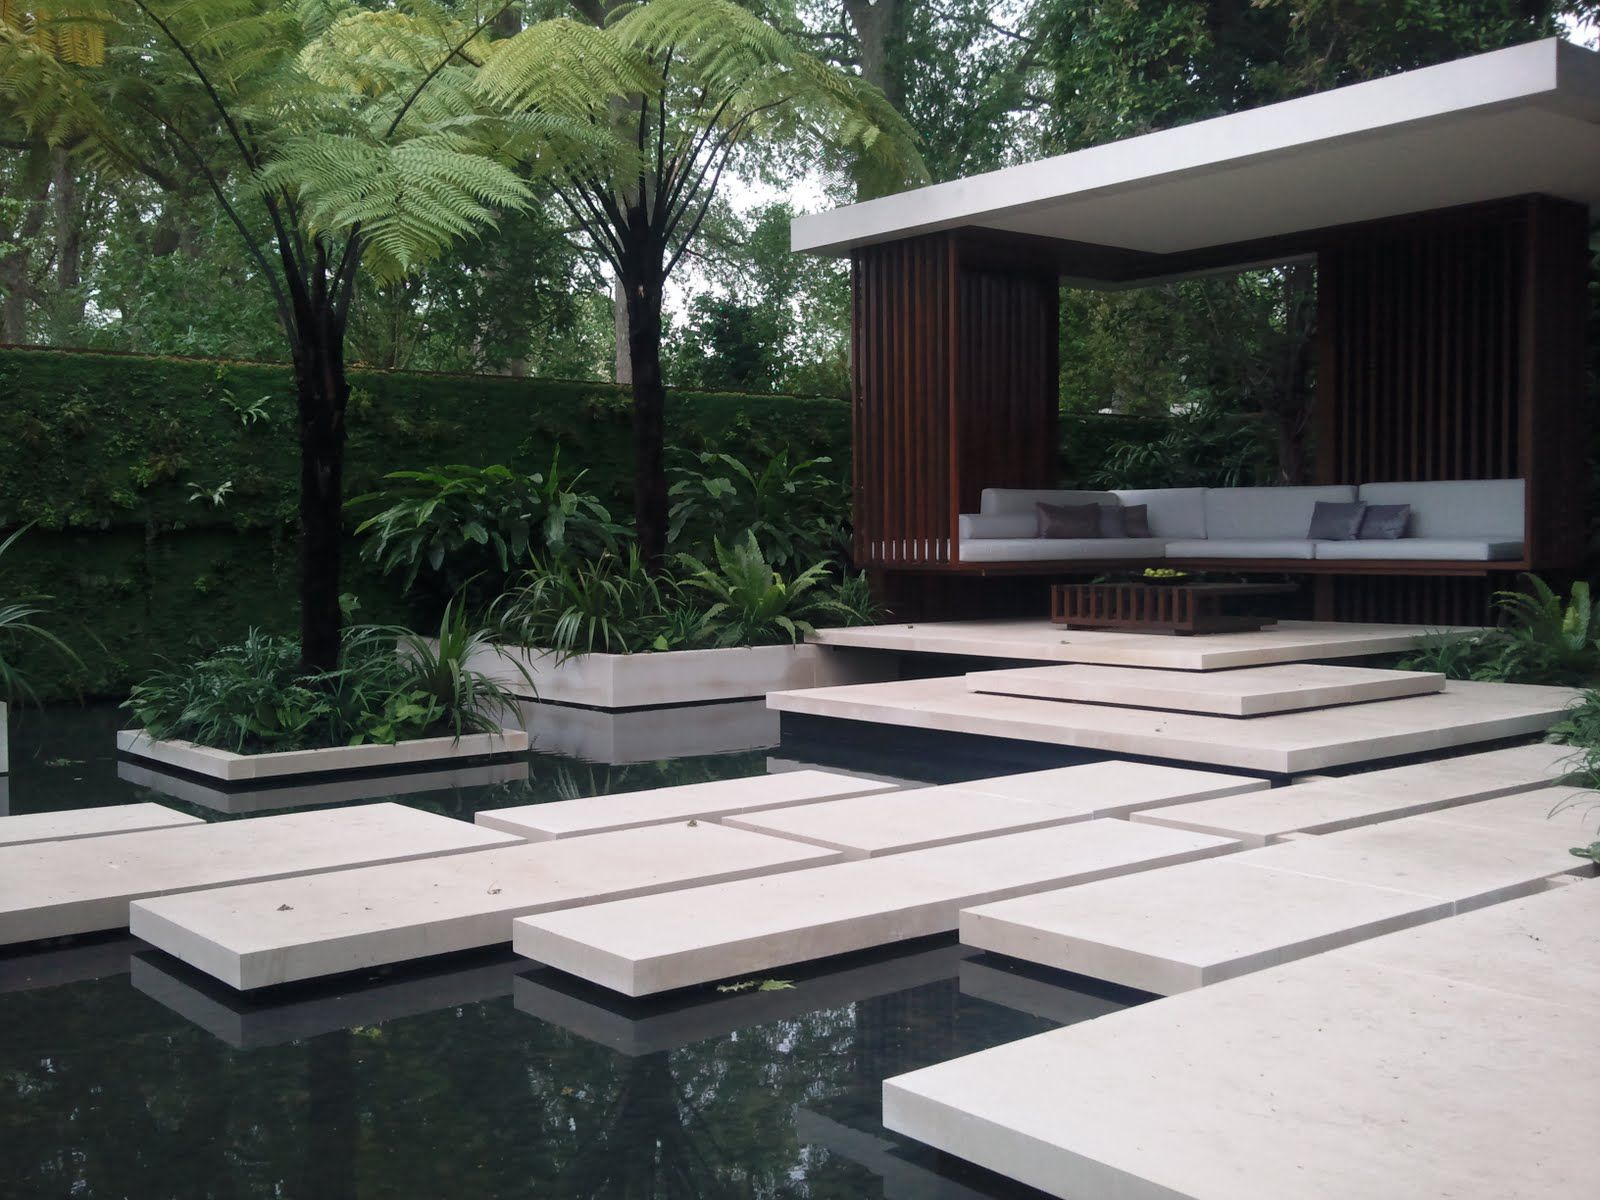 Pond with stepping stones and seating area jamieson for Contemporary pond design